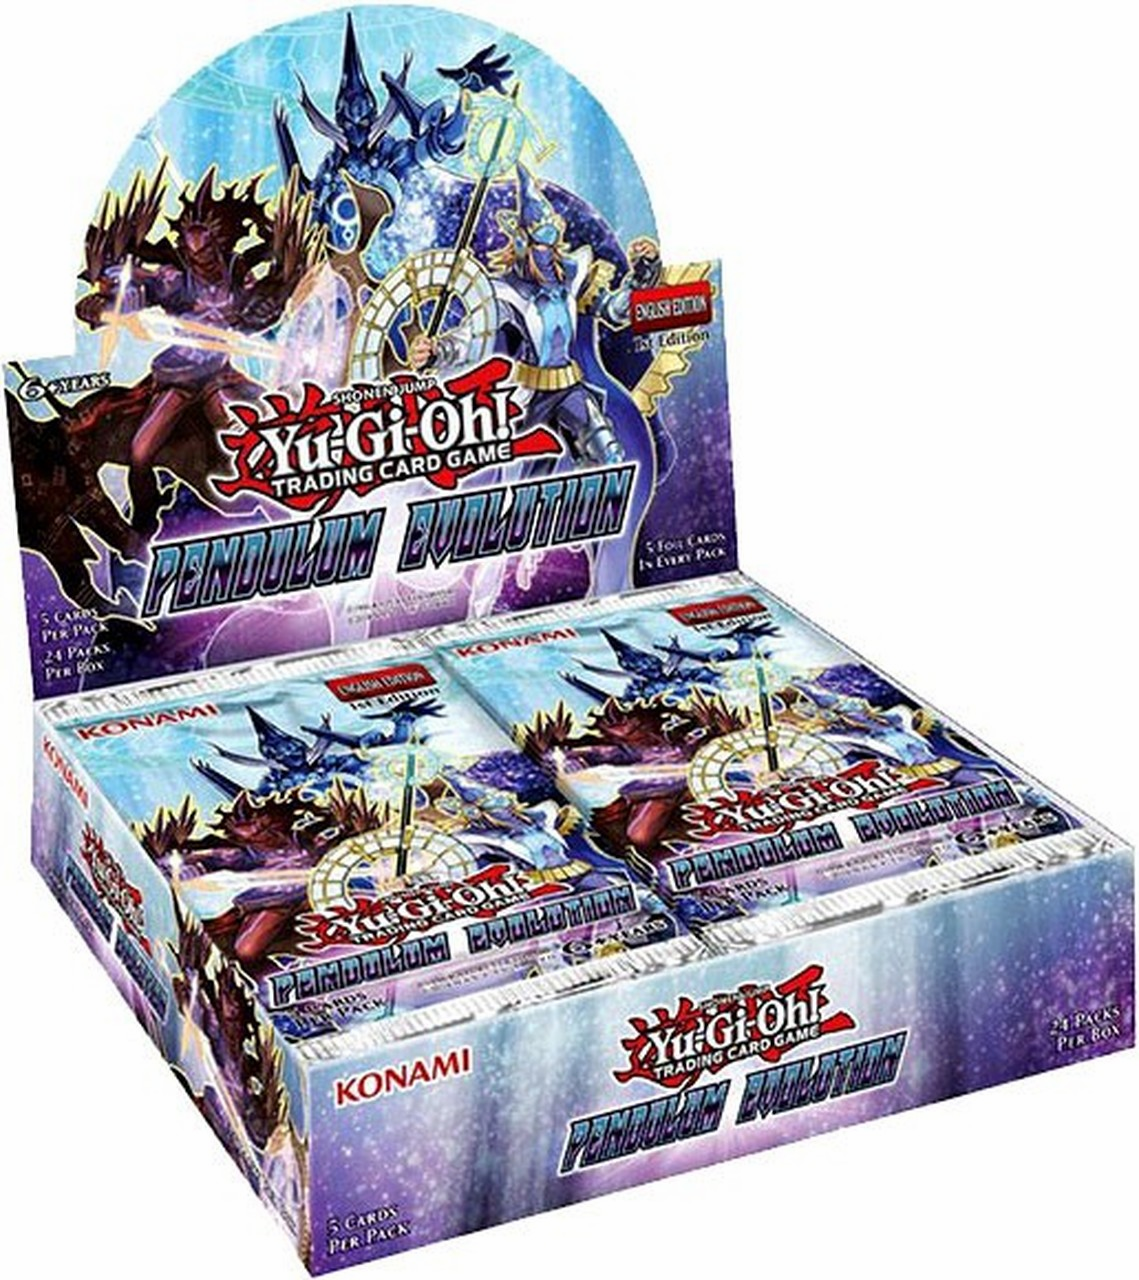 Yu-Gi-Oh Pendulum Evolution Sealed Booster Box